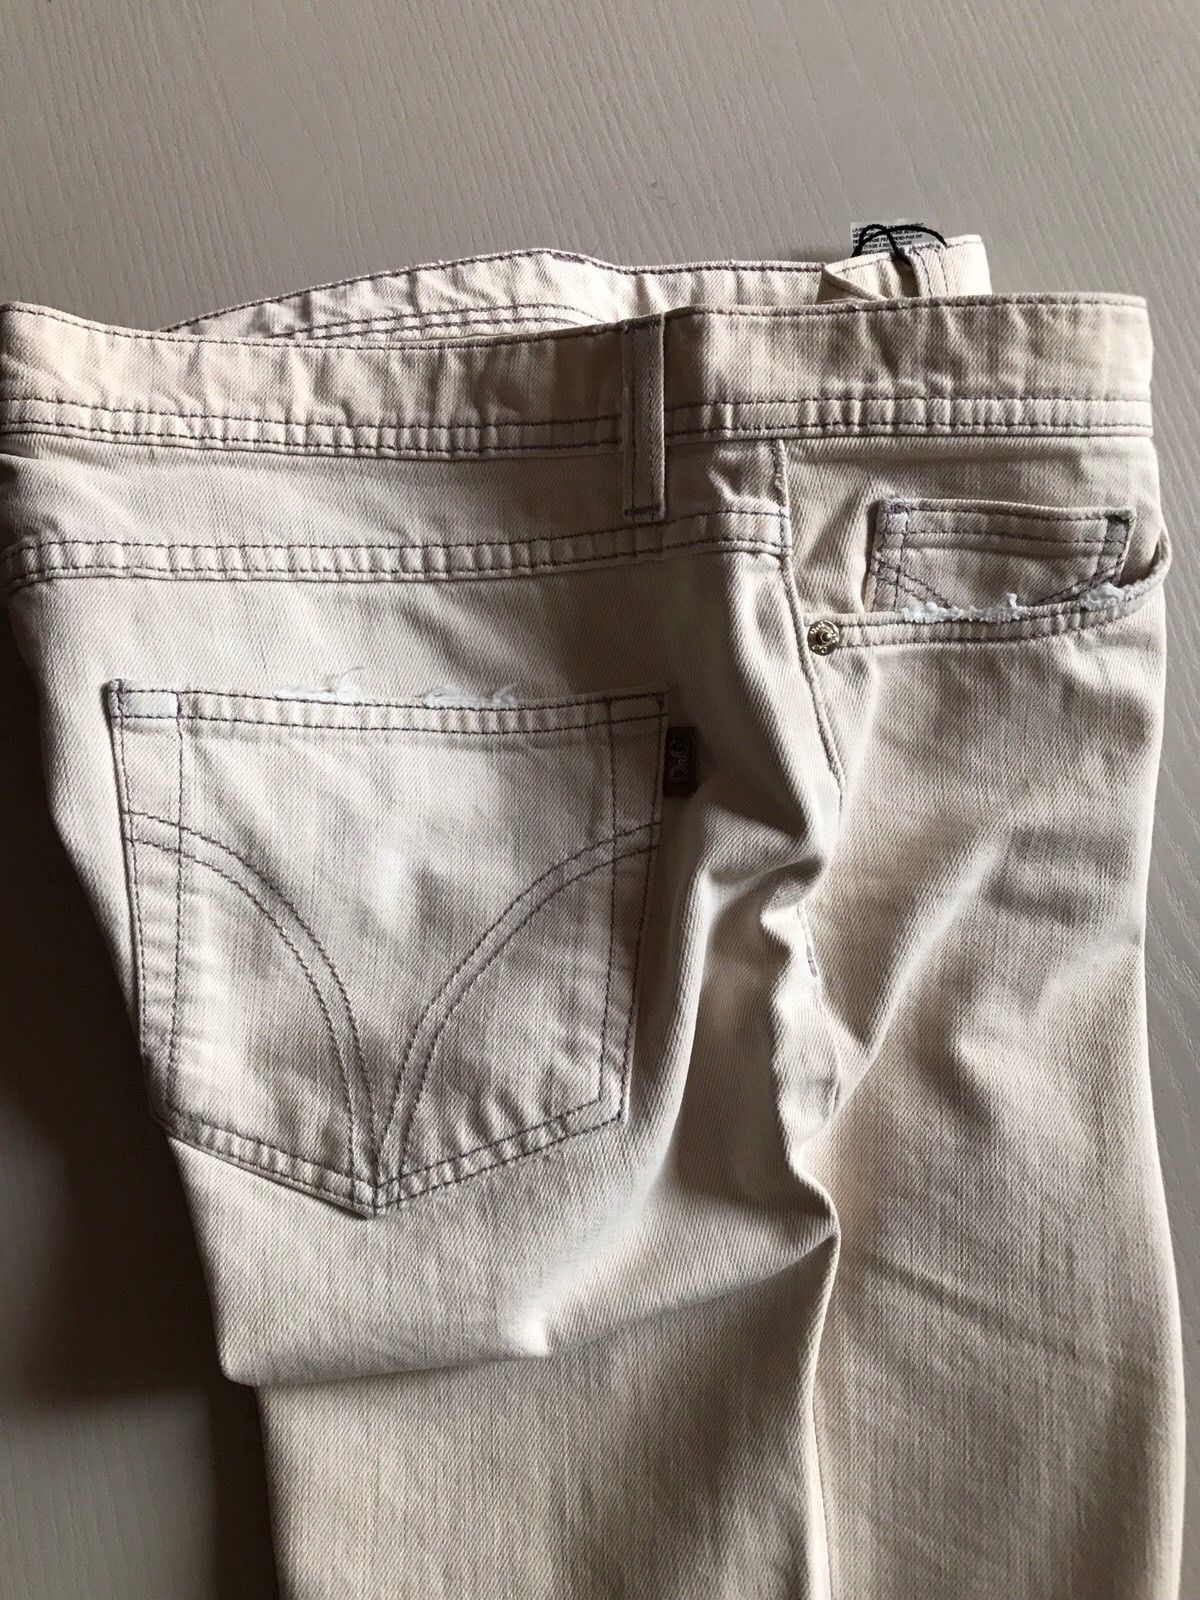 New $475 D&G Women's Pants Jeans Cream Size 28 Made In Italy - BAYSUPERSTORE